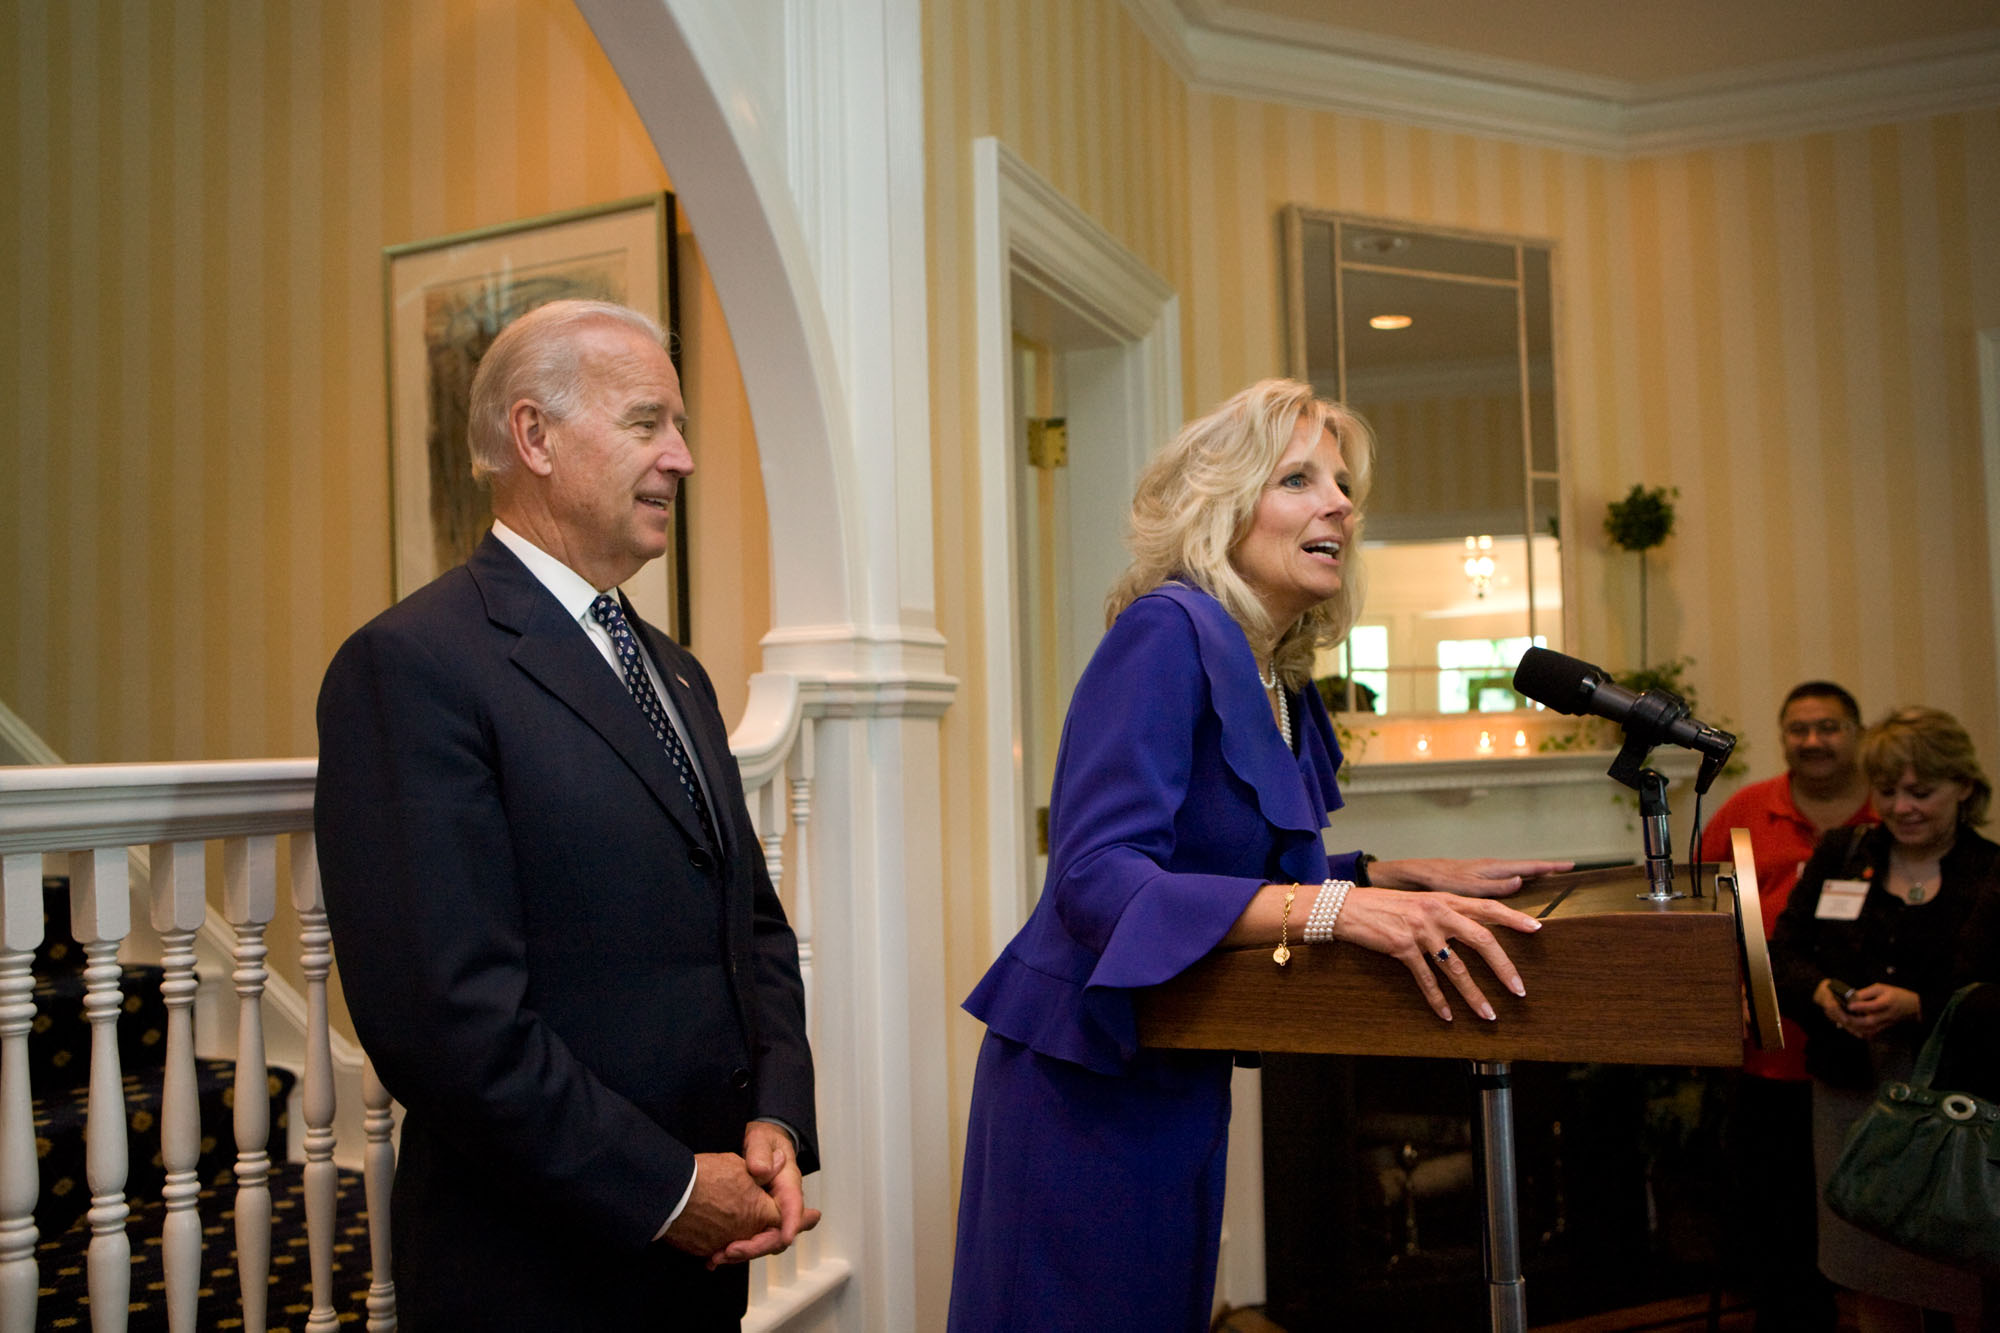 Dr. Biden at 2010 National Teachers of the Year Reception